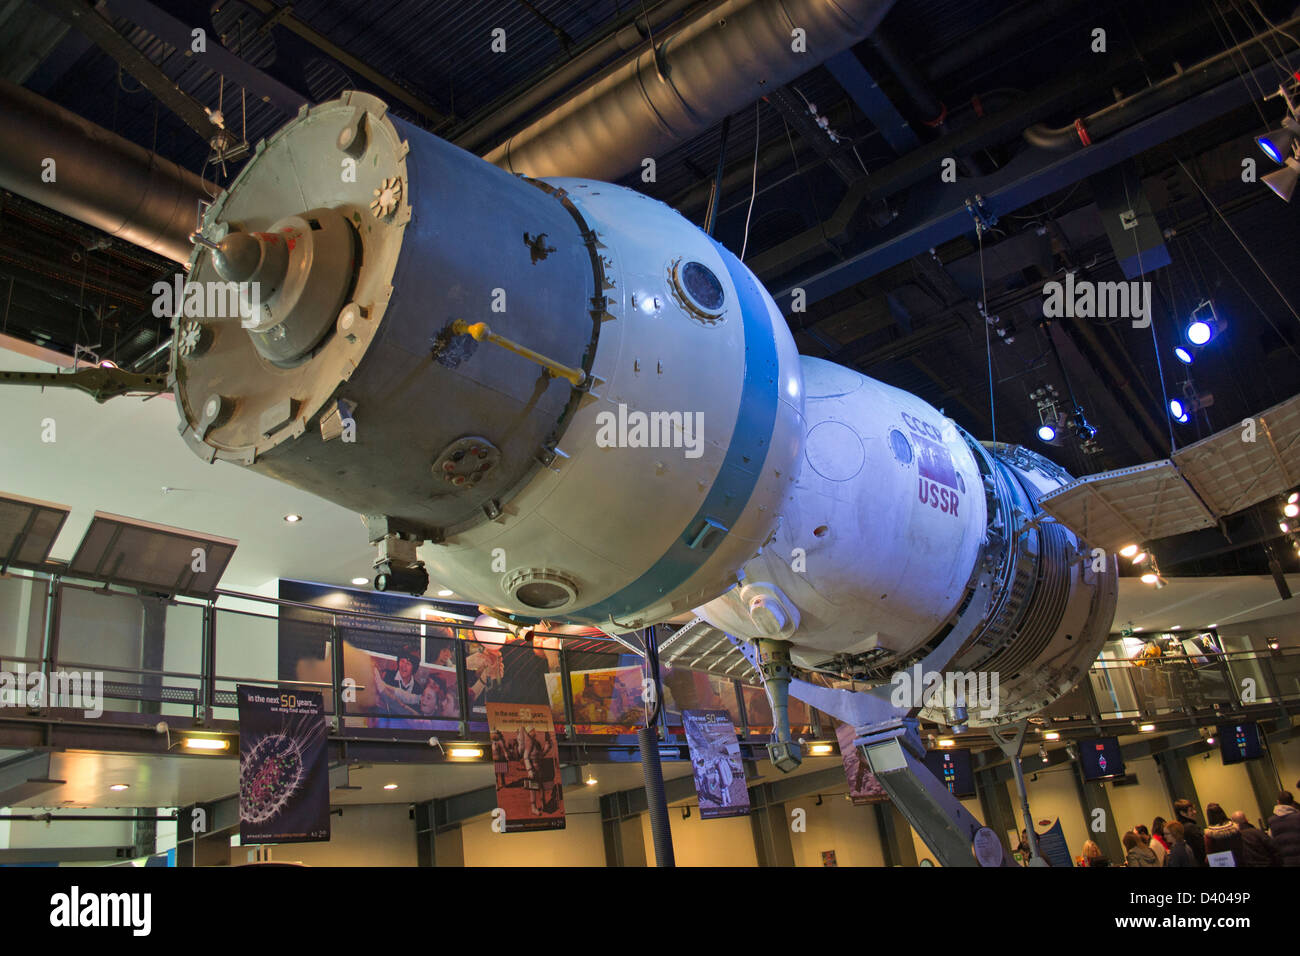 Russian Soyuz spacecraft on display inside the National Space Centre, Leicester, England, UK - Stock Image